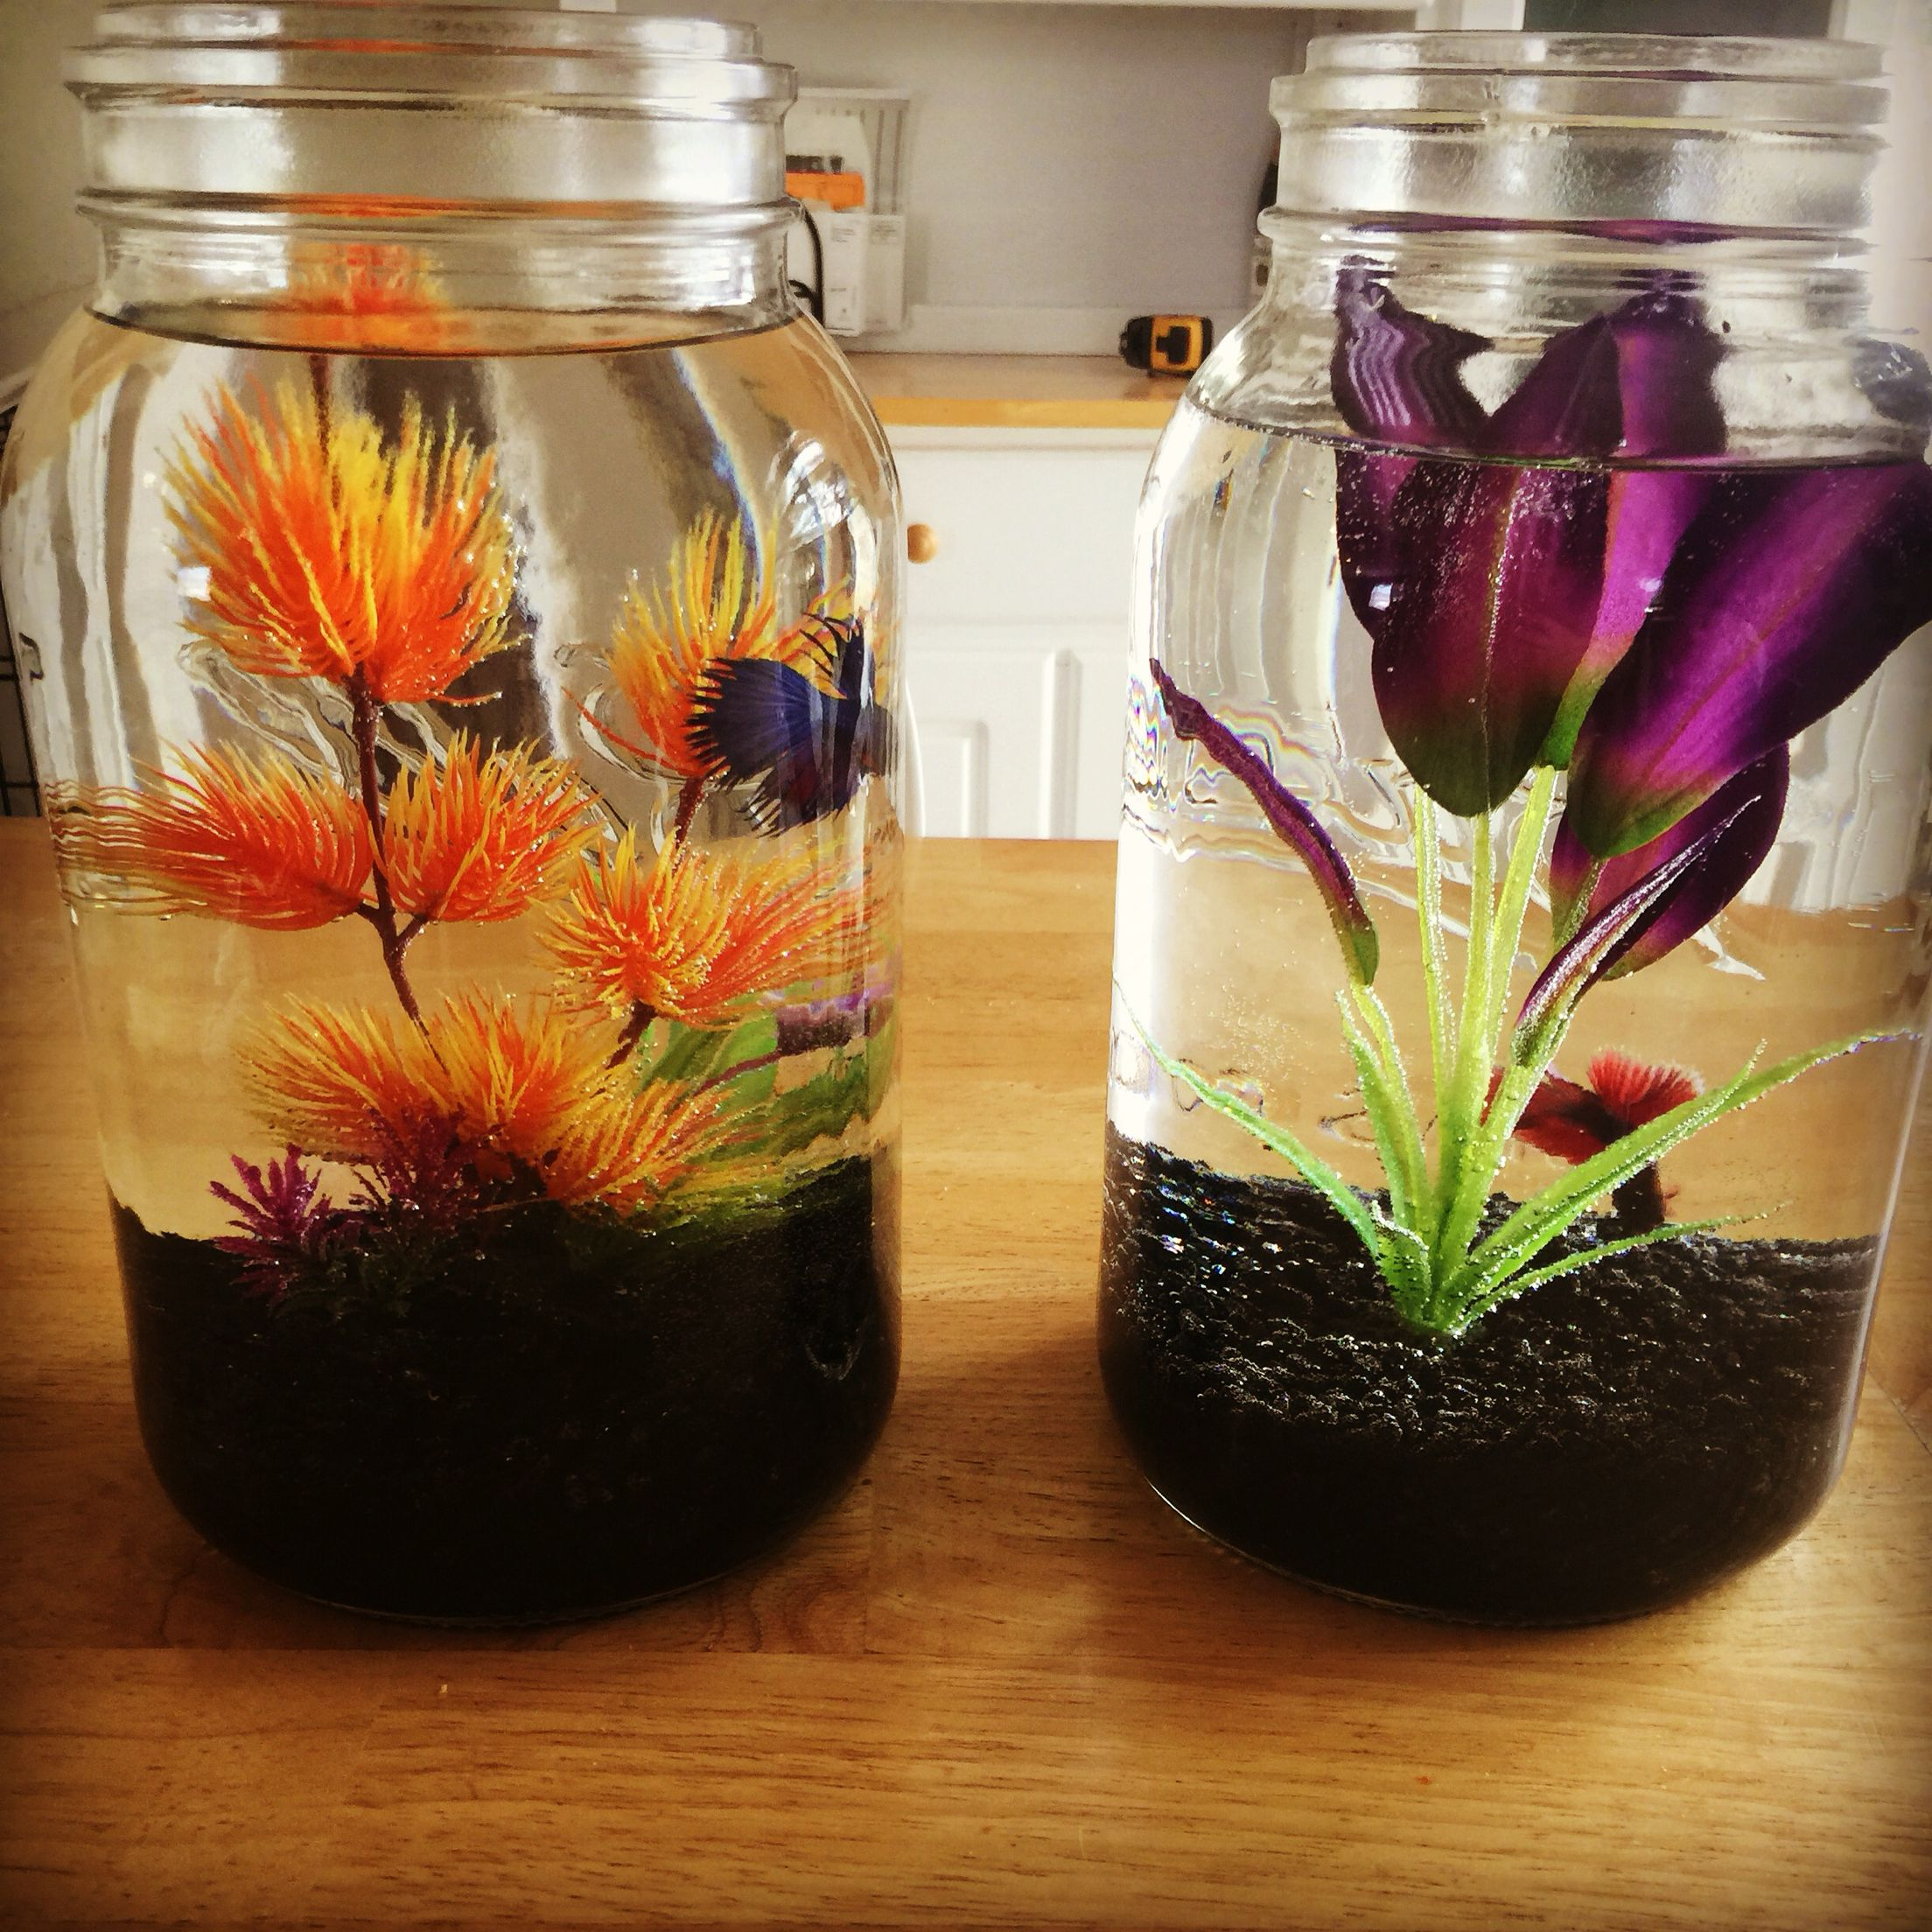 Beta fish bowl ideas gal size mason jars betta fish for Betta fish bowl ideas